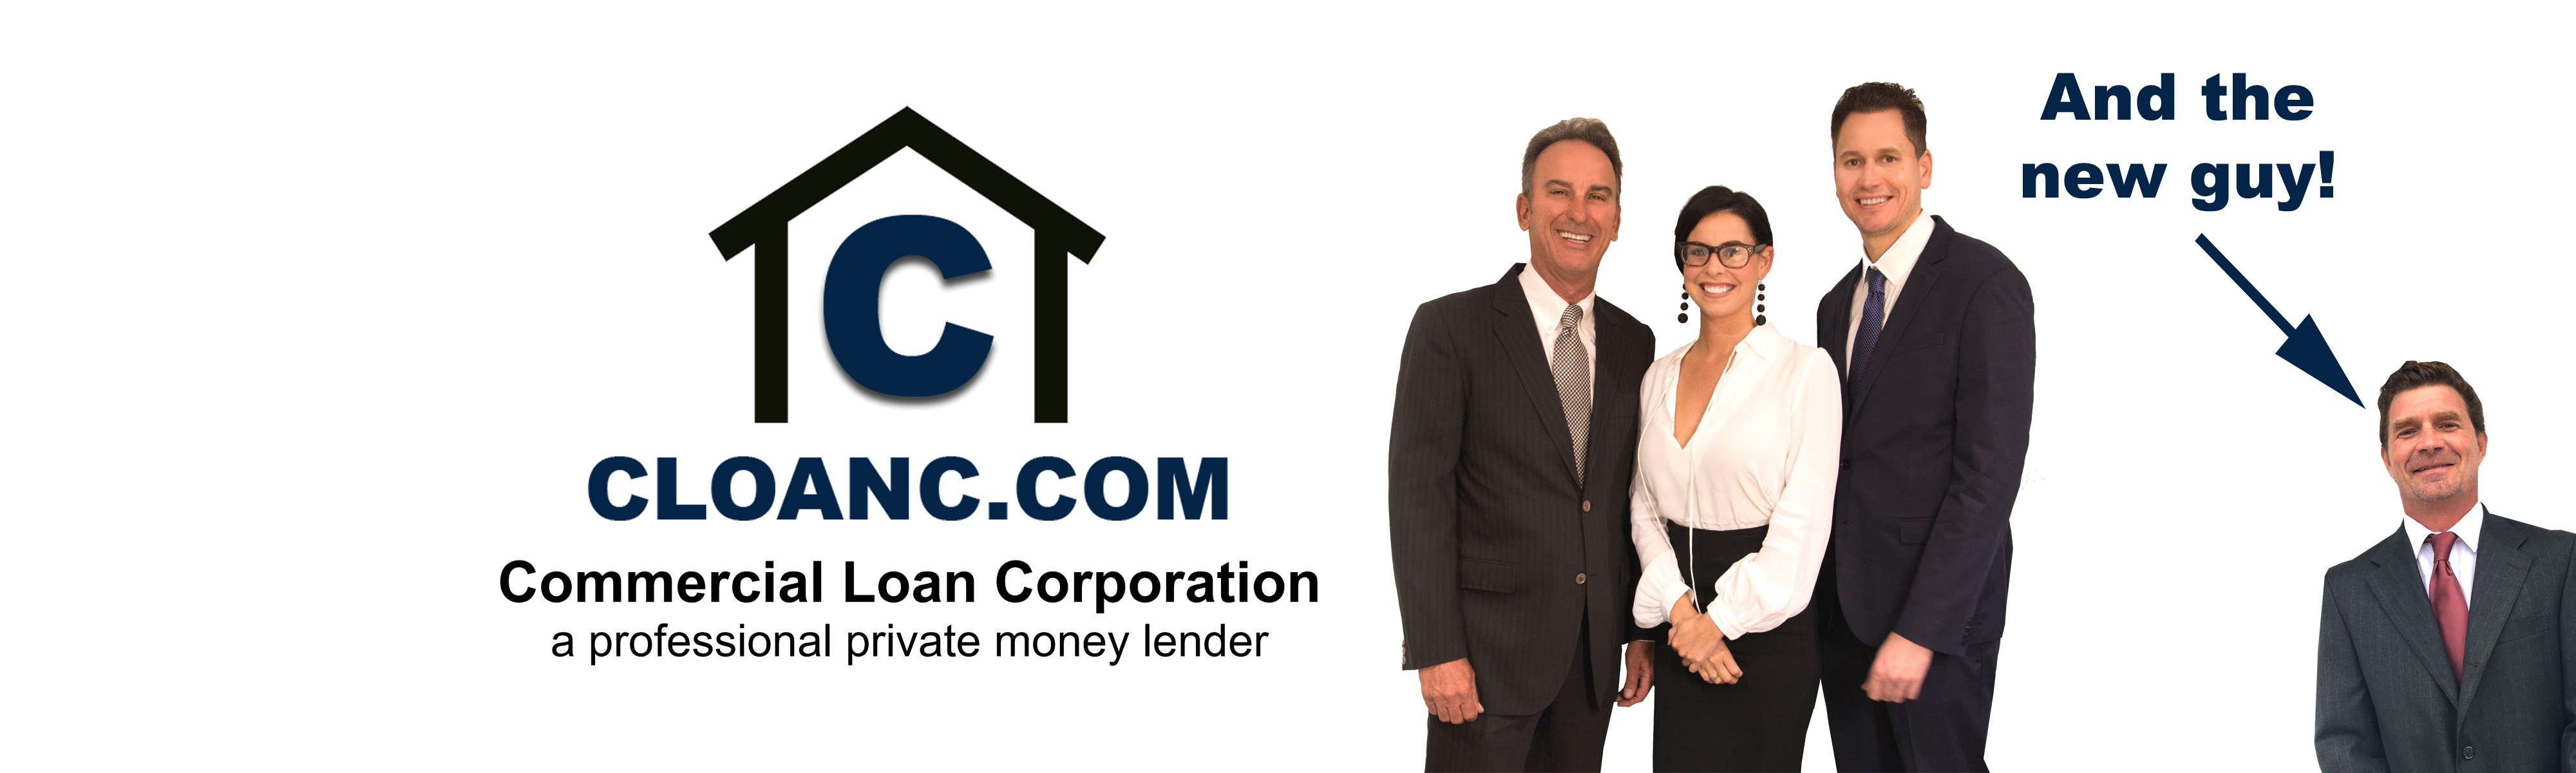 Commercial Loan Corporation Header Image